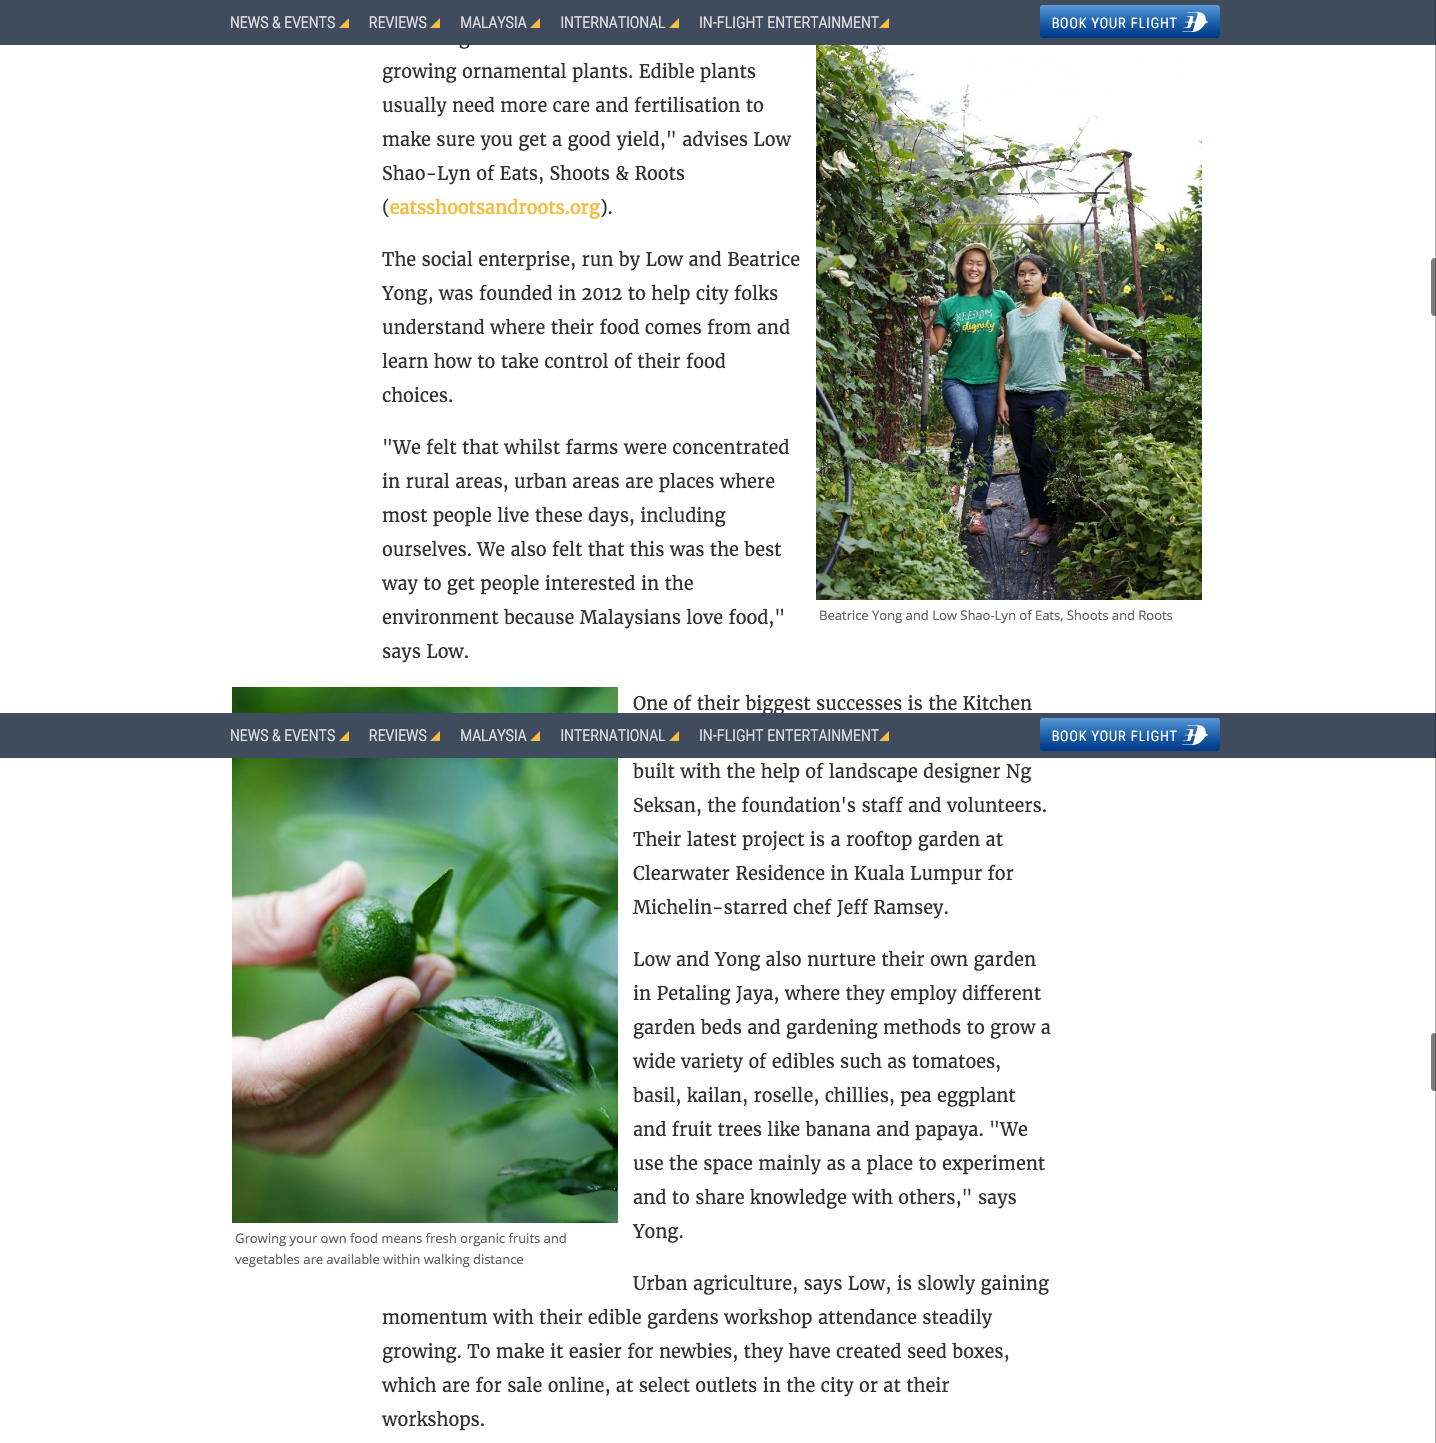 Going Places - Gardening Projects Are Bringing Out Gre...- Malaysia Airlines In-Flight Magazine3